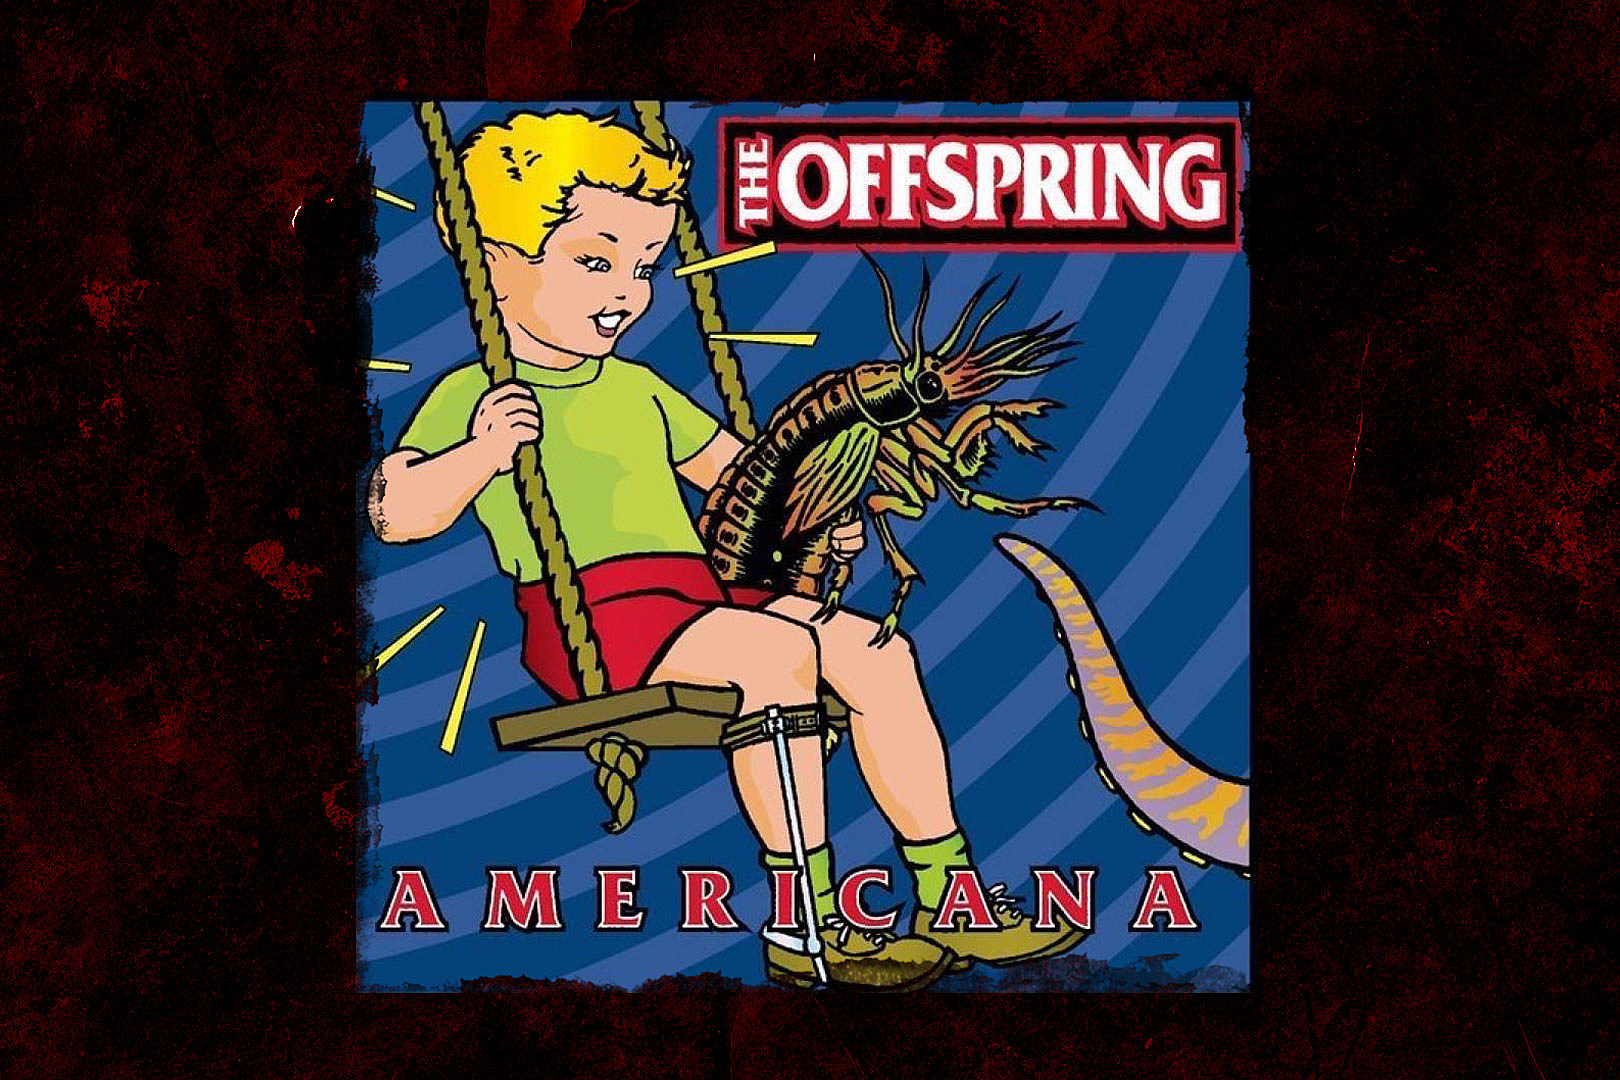 21 Years Ago: The Offspring Reflect Their World With the Release of 'Americana'